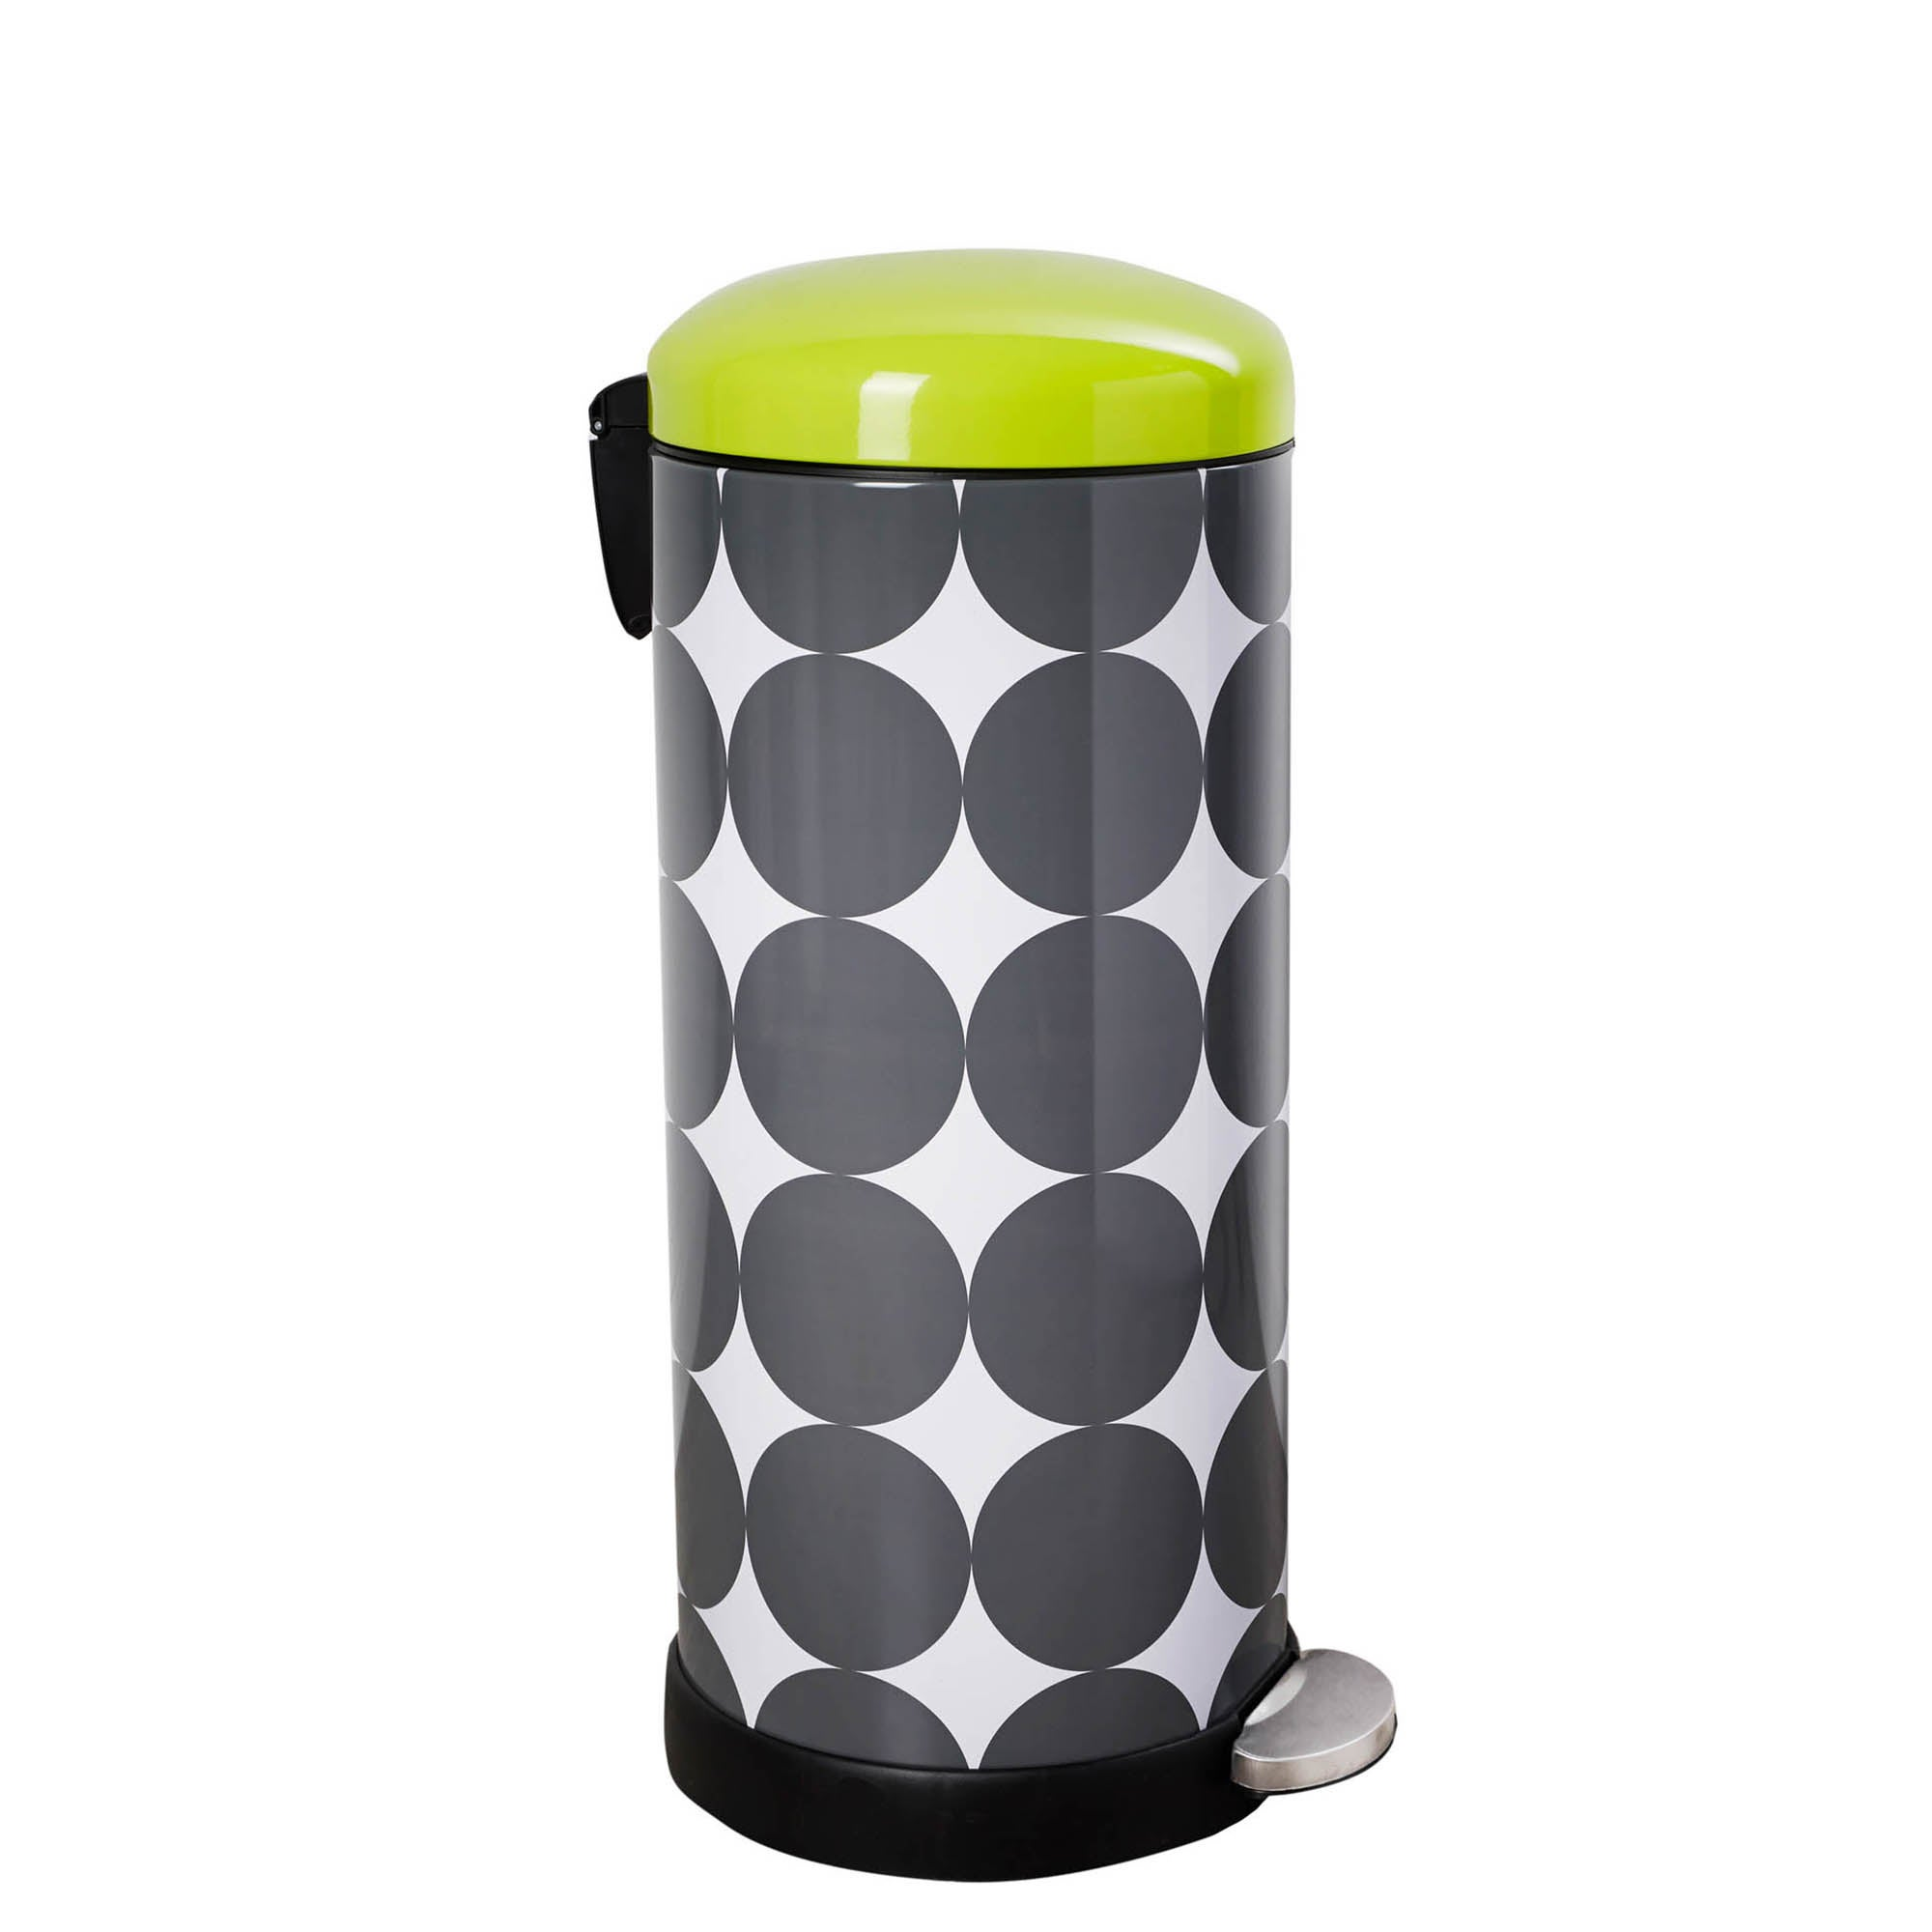 Photo of Dunelm 30 litre retro print stainless steel pedal bin lime -green-